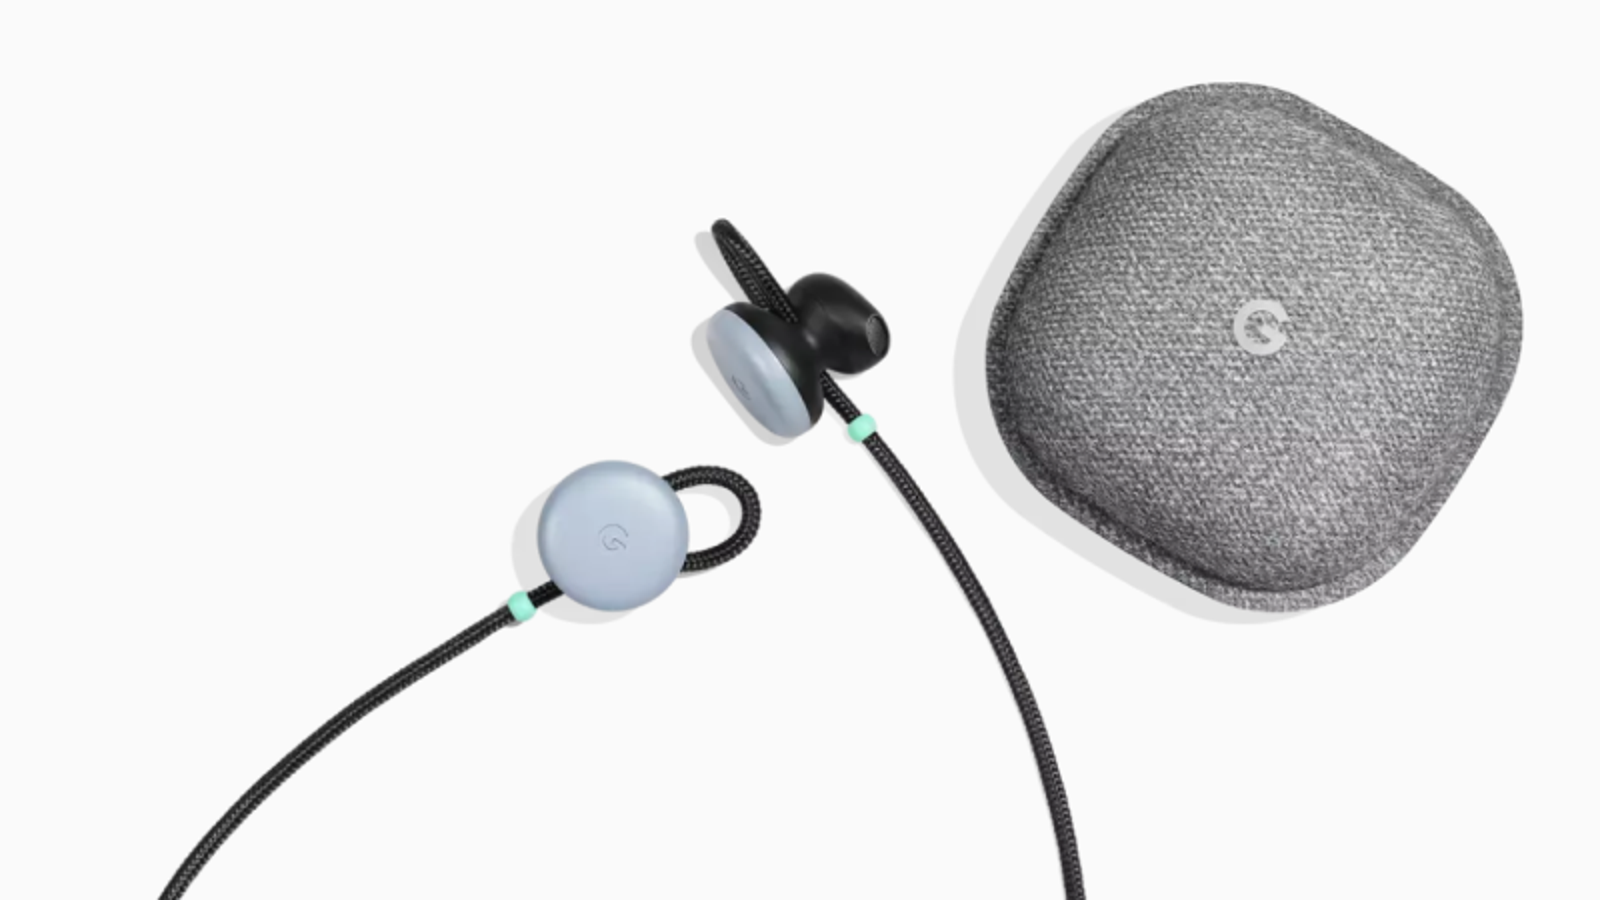 sennheiser earbuds cx 400 - Google Wants to Beat AirPods with Software